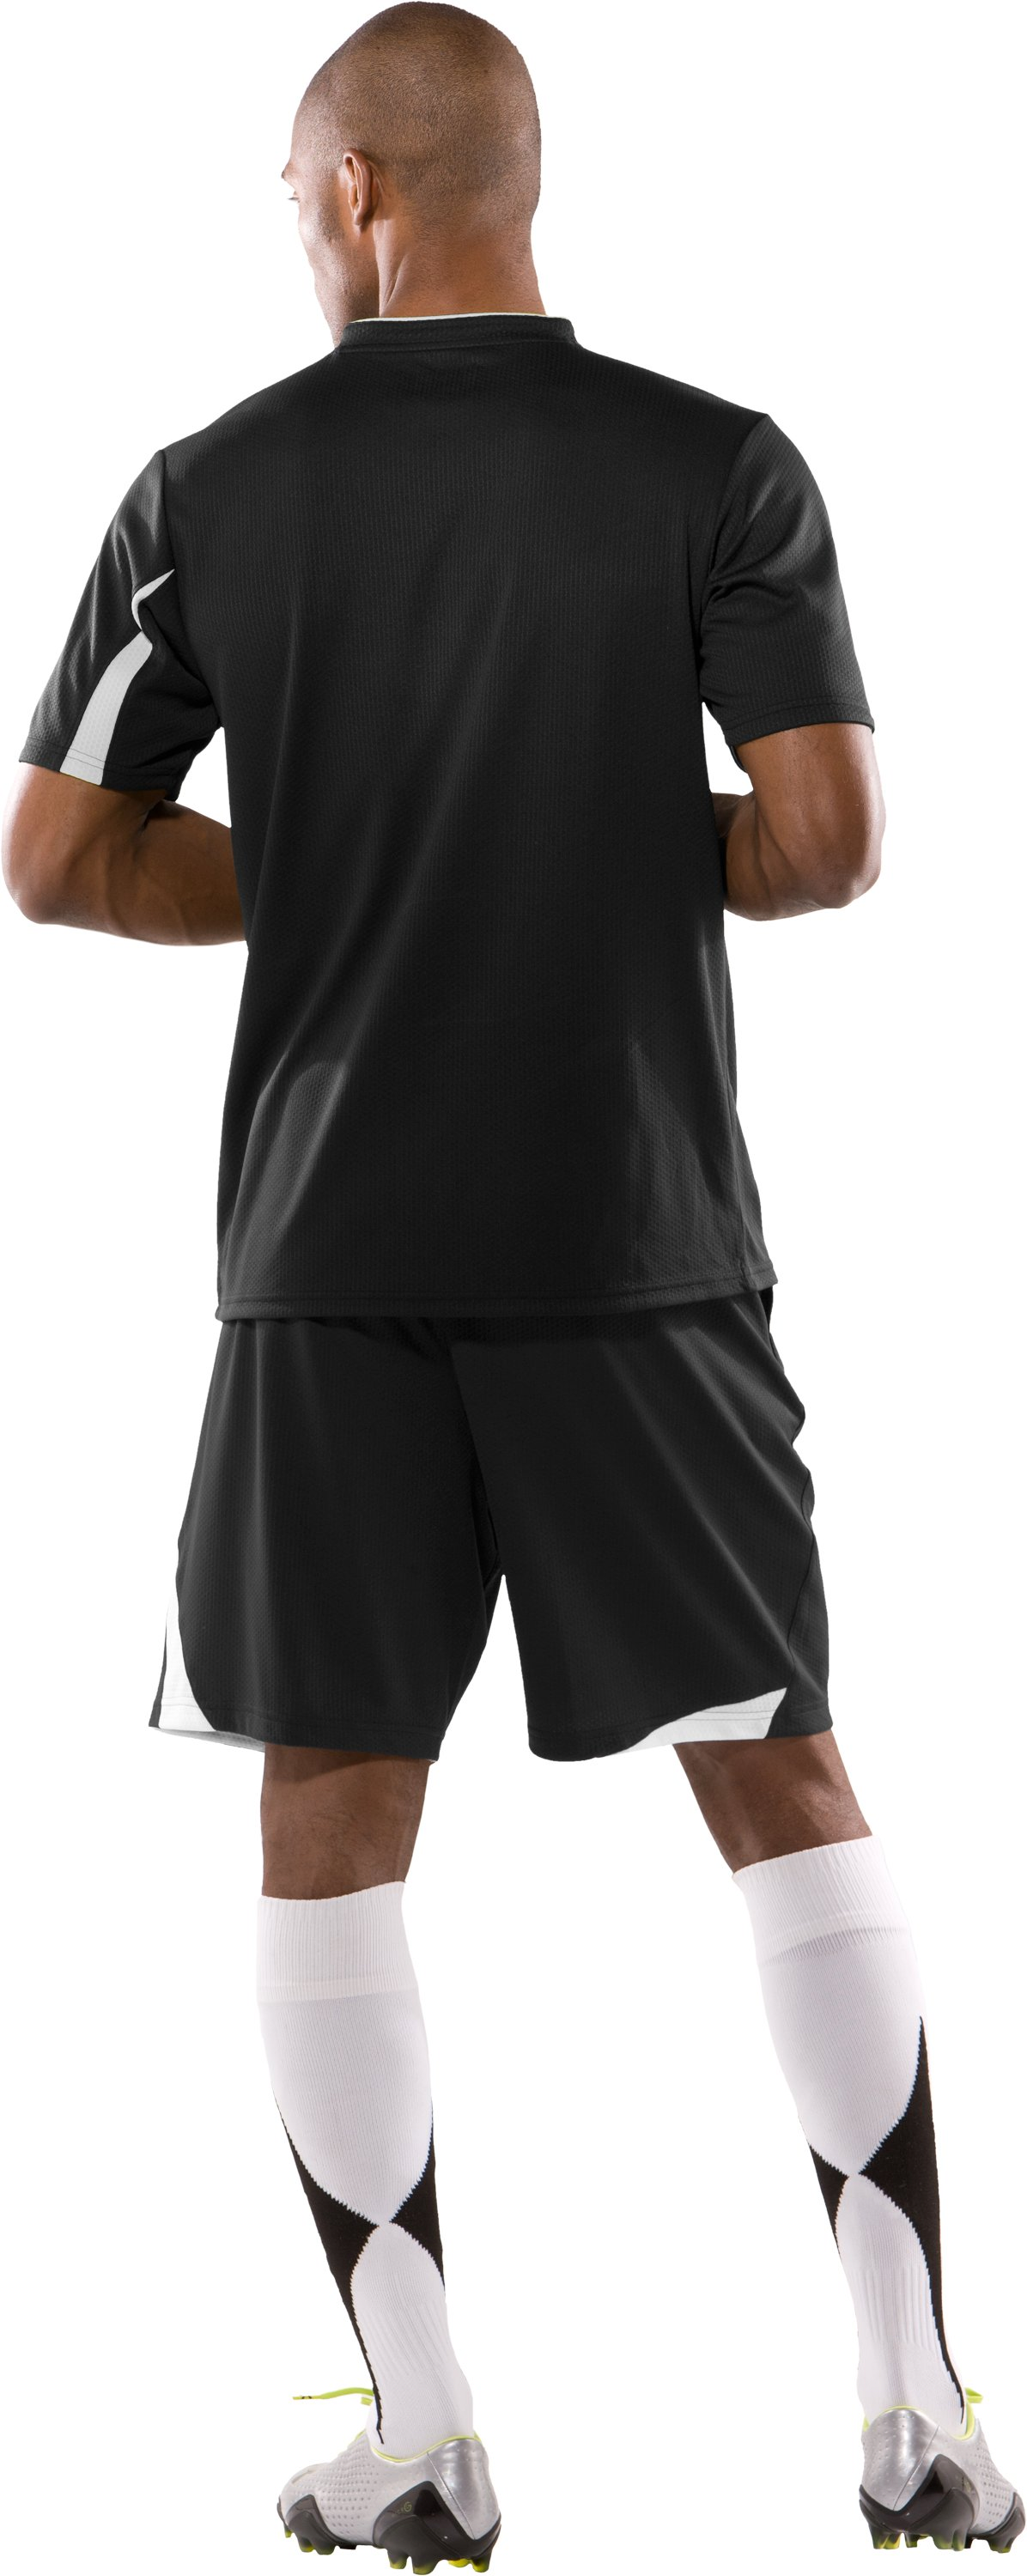 "Men's 10KForce 9"" Shorts, Black , Back"